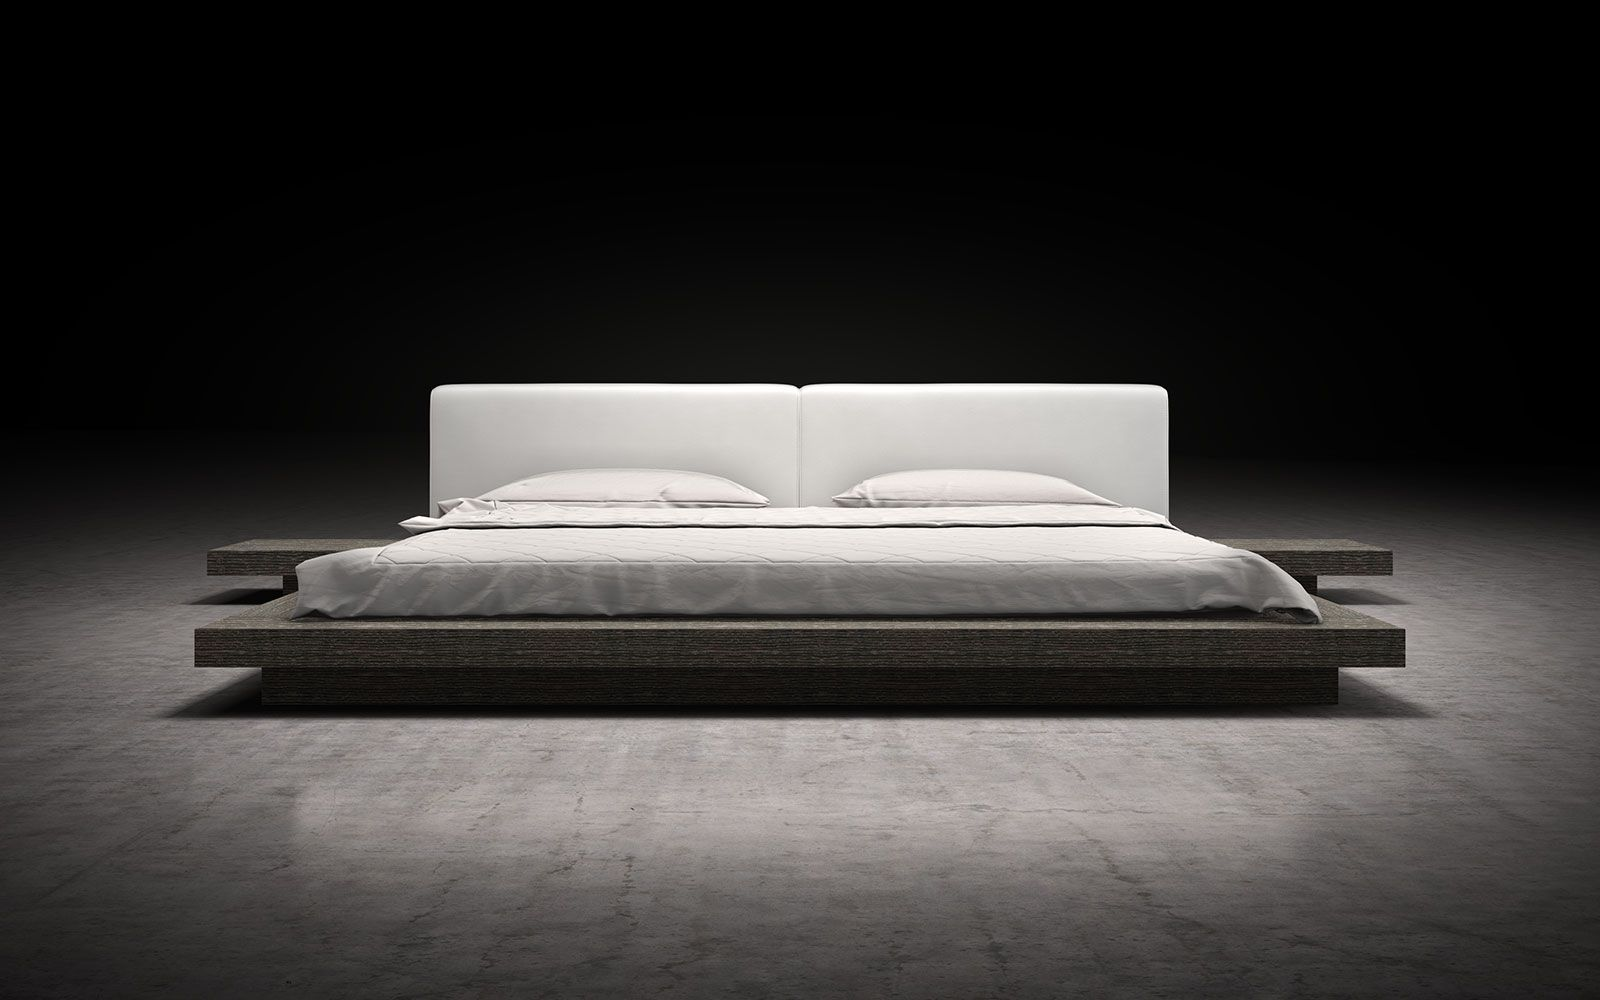 The Japaneseinspired Worth platform bed features a low